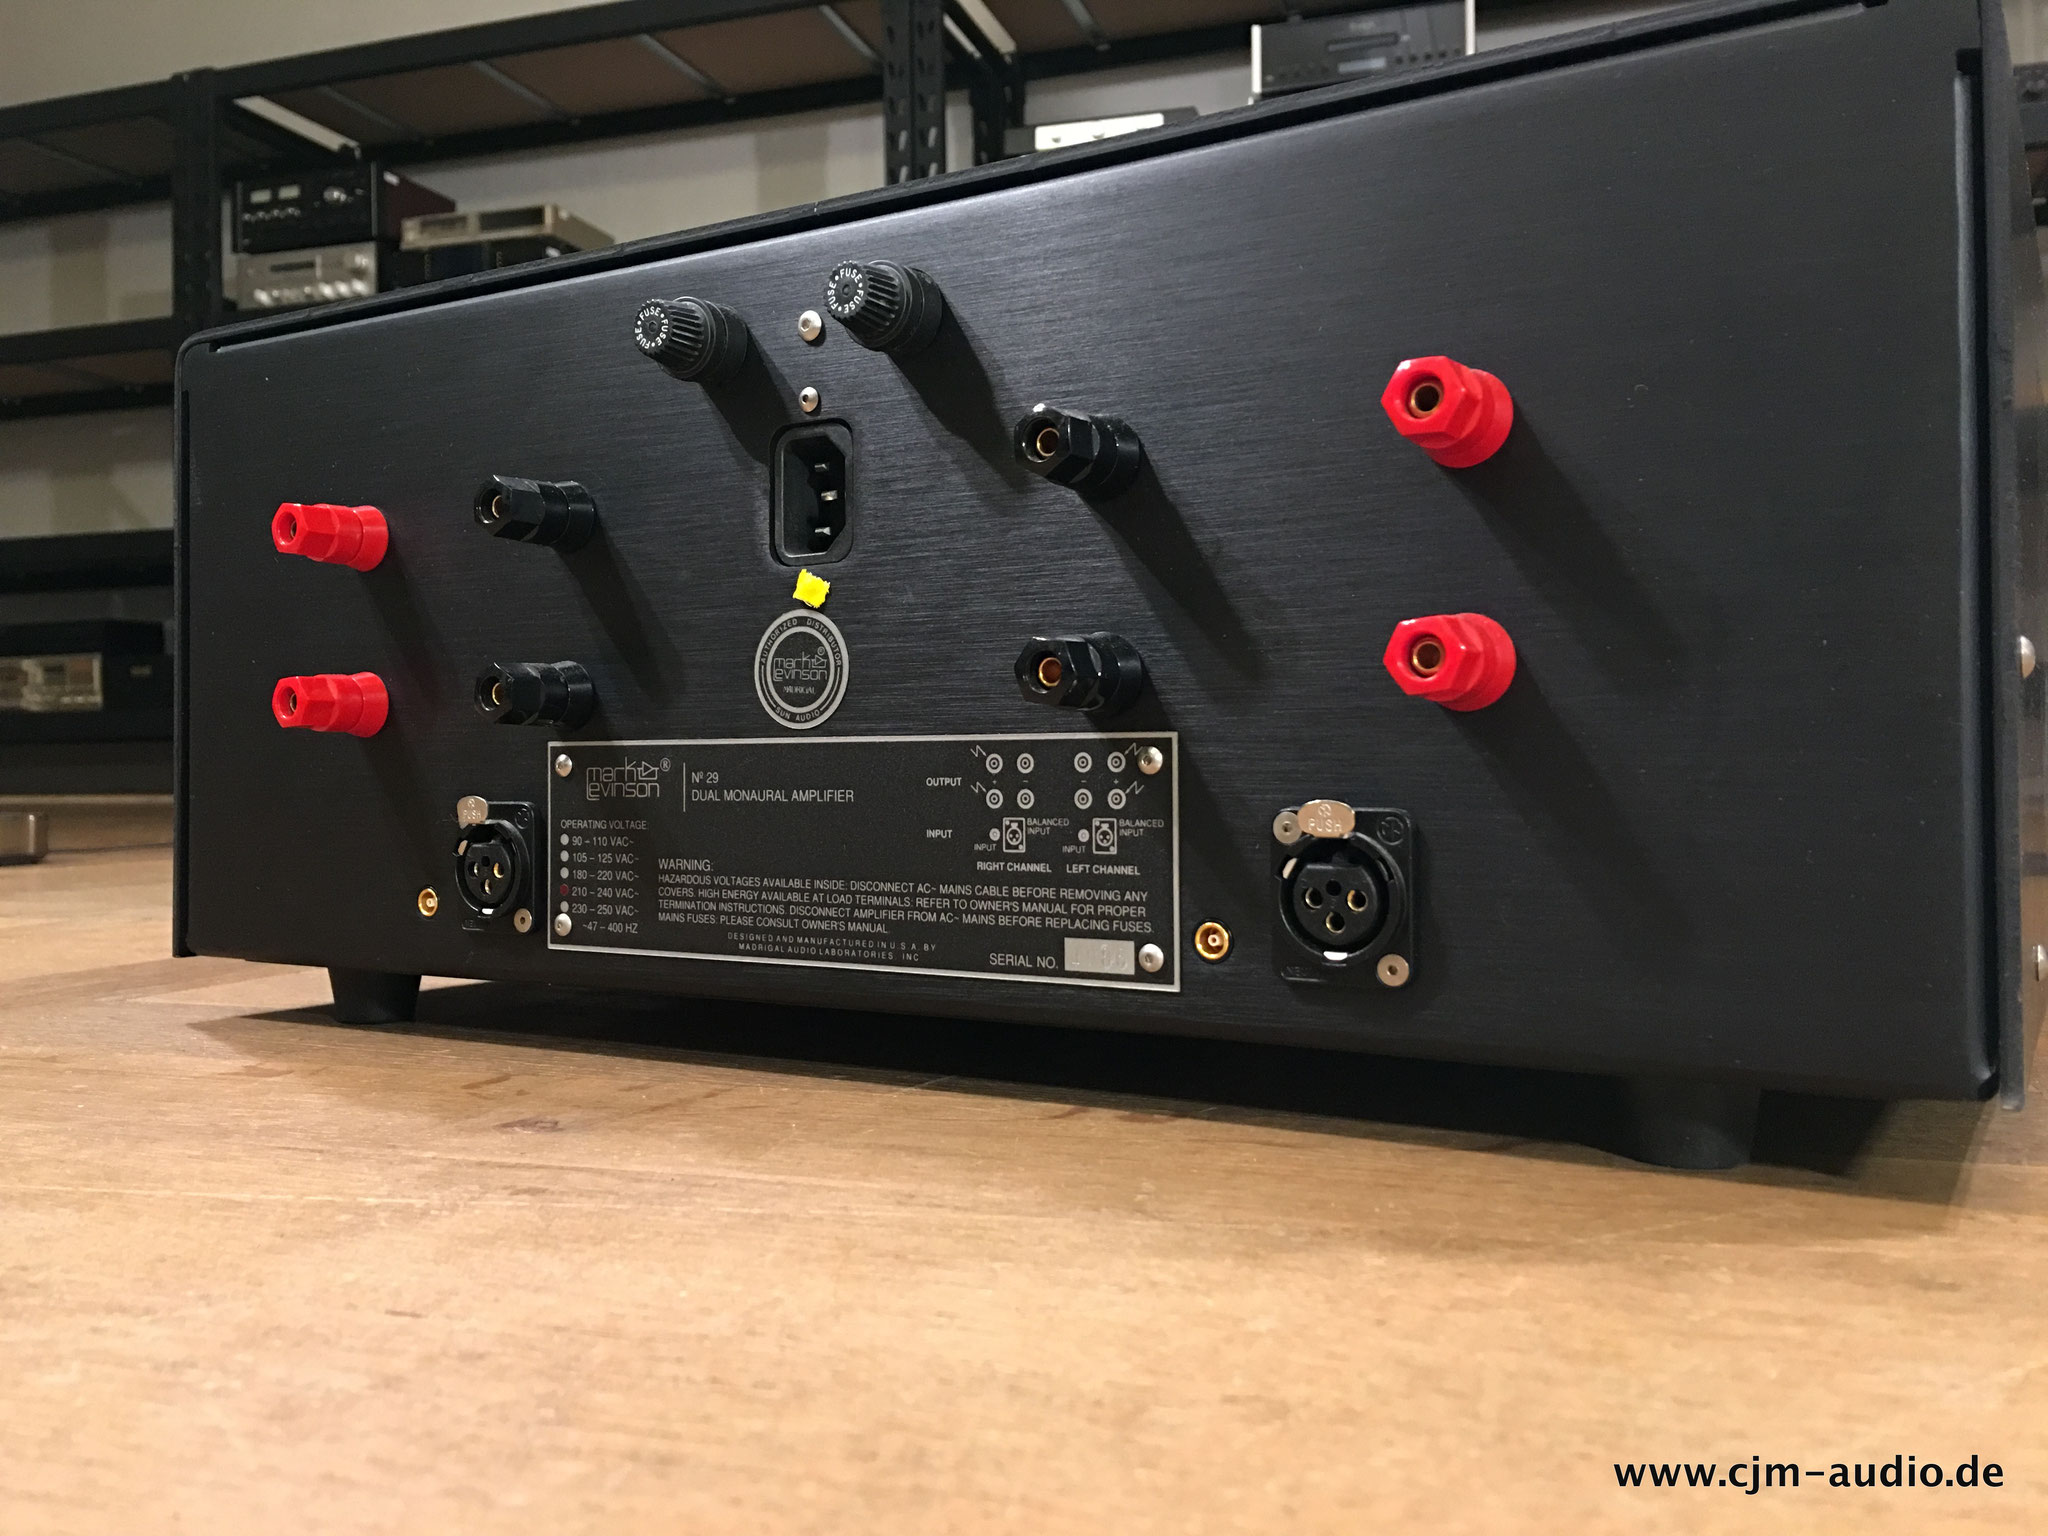 Mark Levinson - cjm-audio High End Audiomarkt für